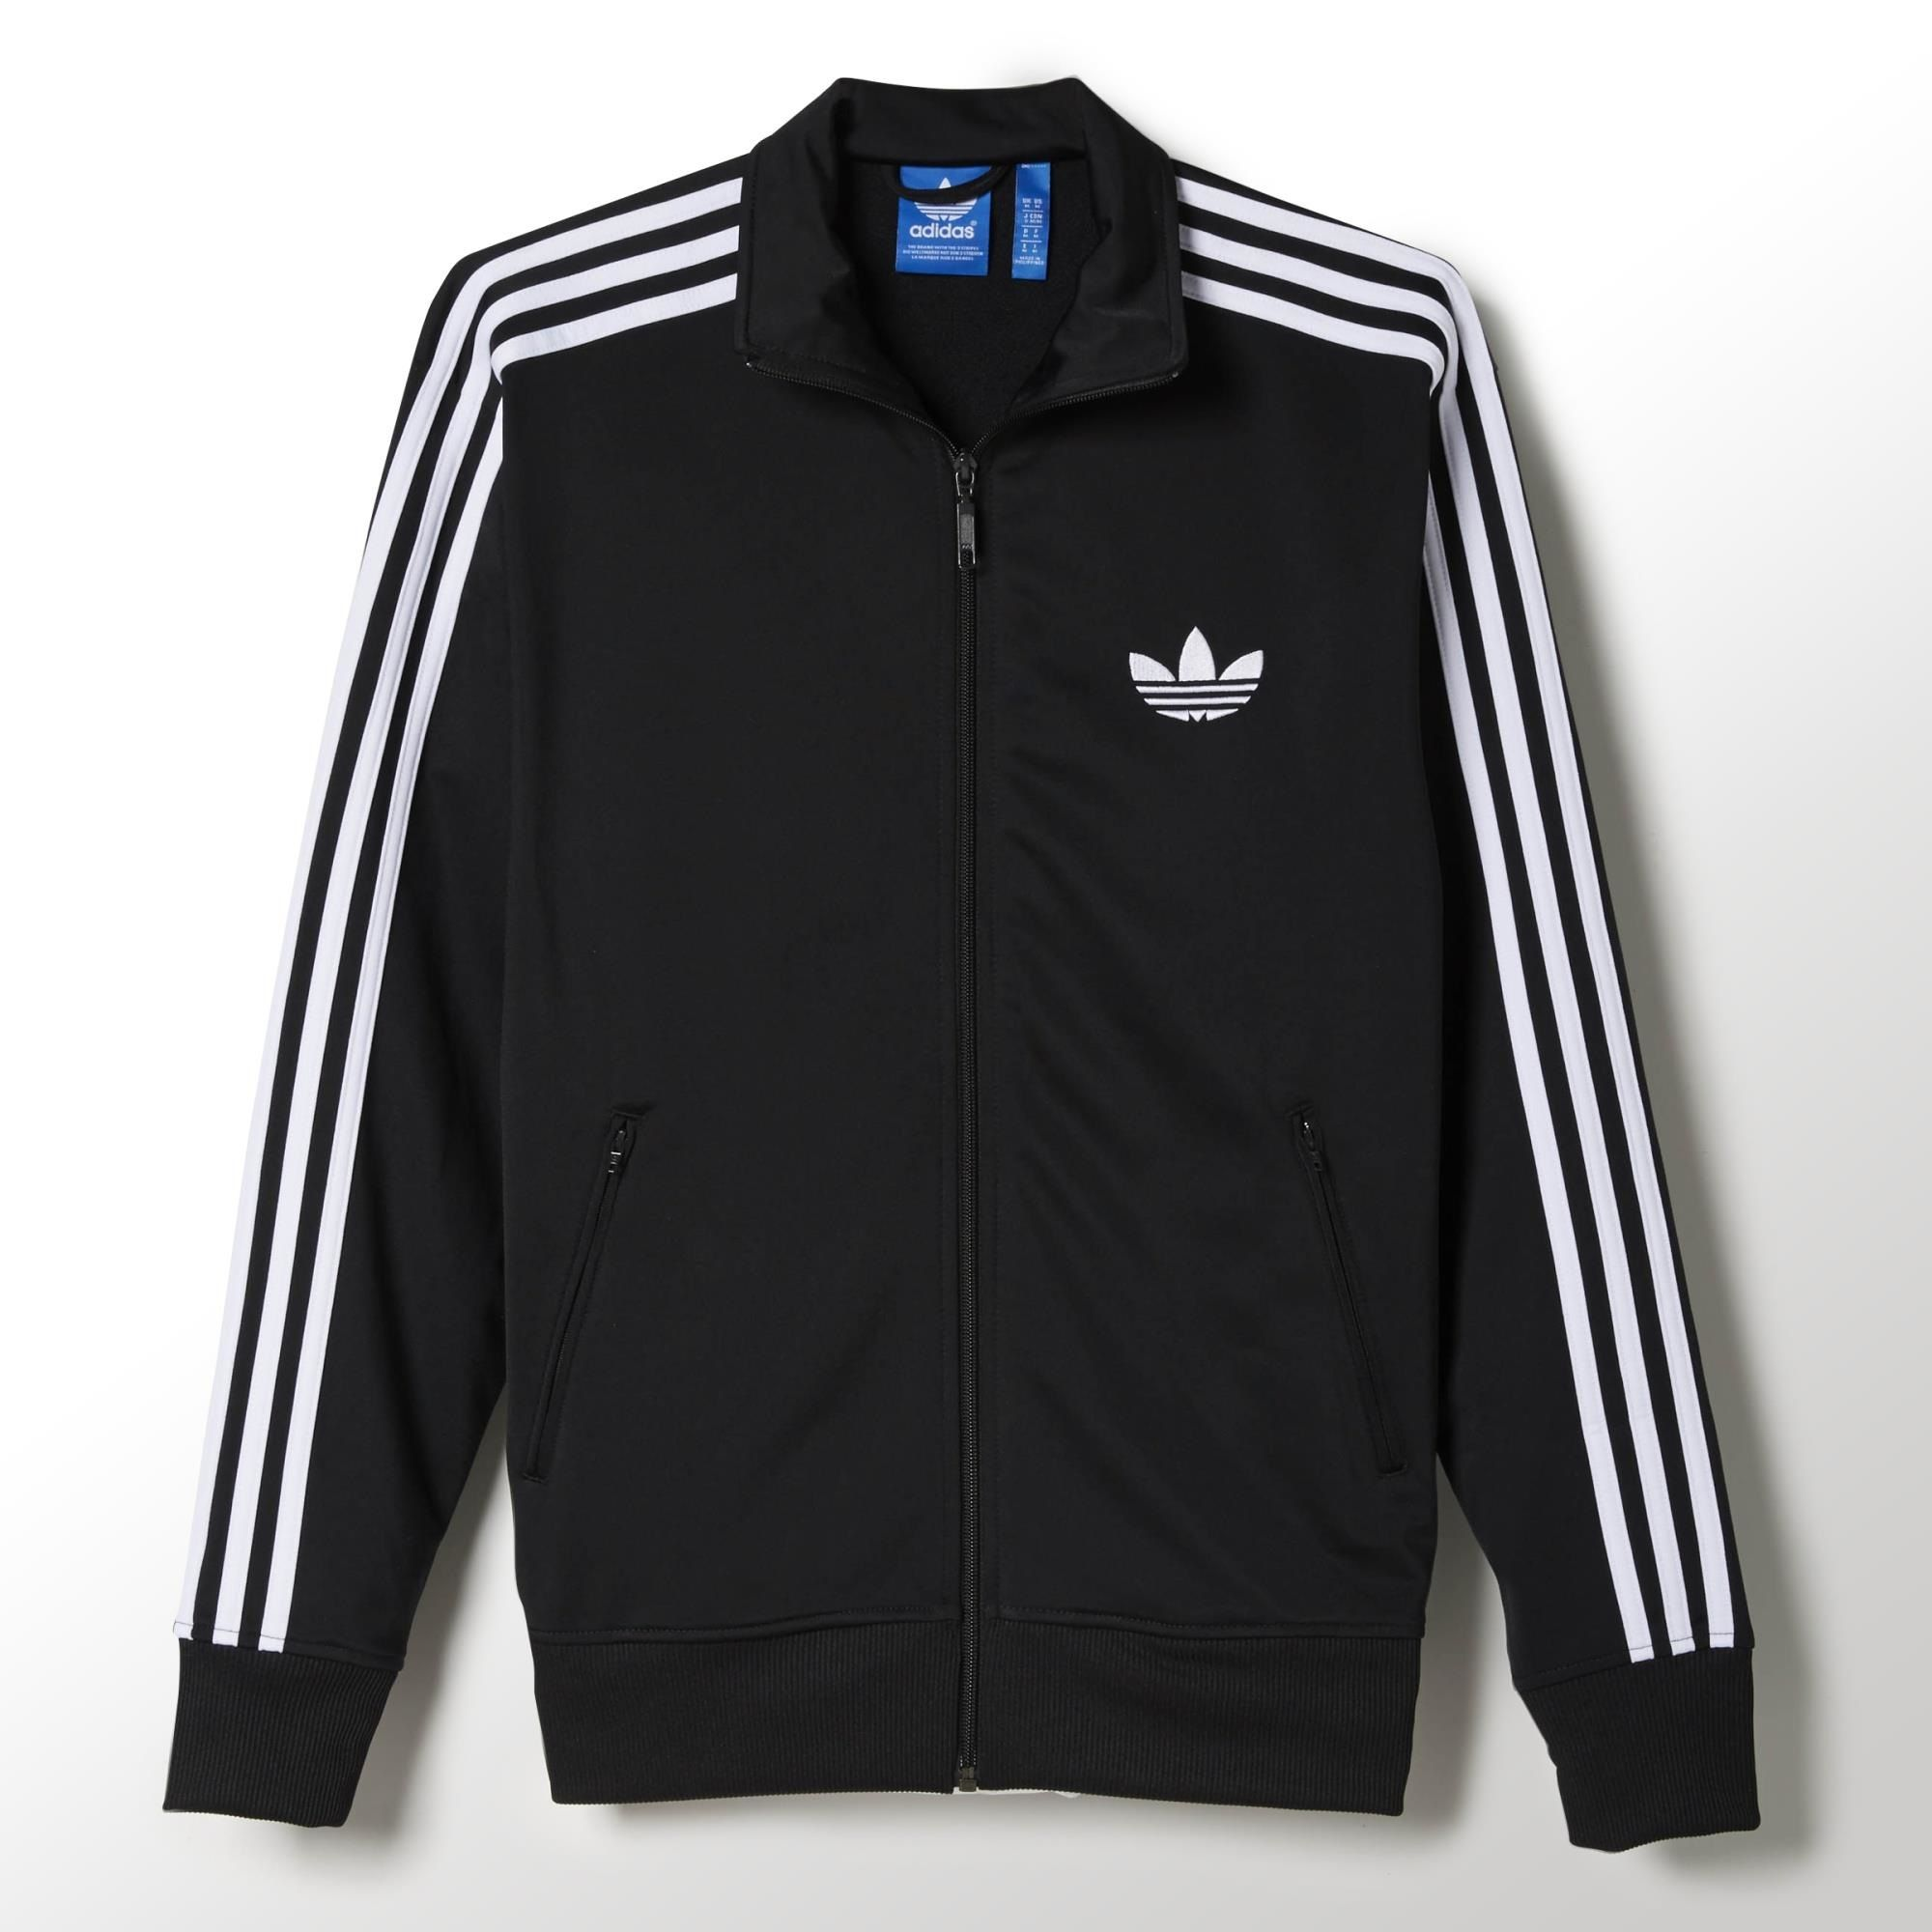 3911a95619b5 ... adidas Originals Firebird Track Top has been almost everywhere and done  almost everything. Now it s your turn to zip up this iconic men s track  jacket ...